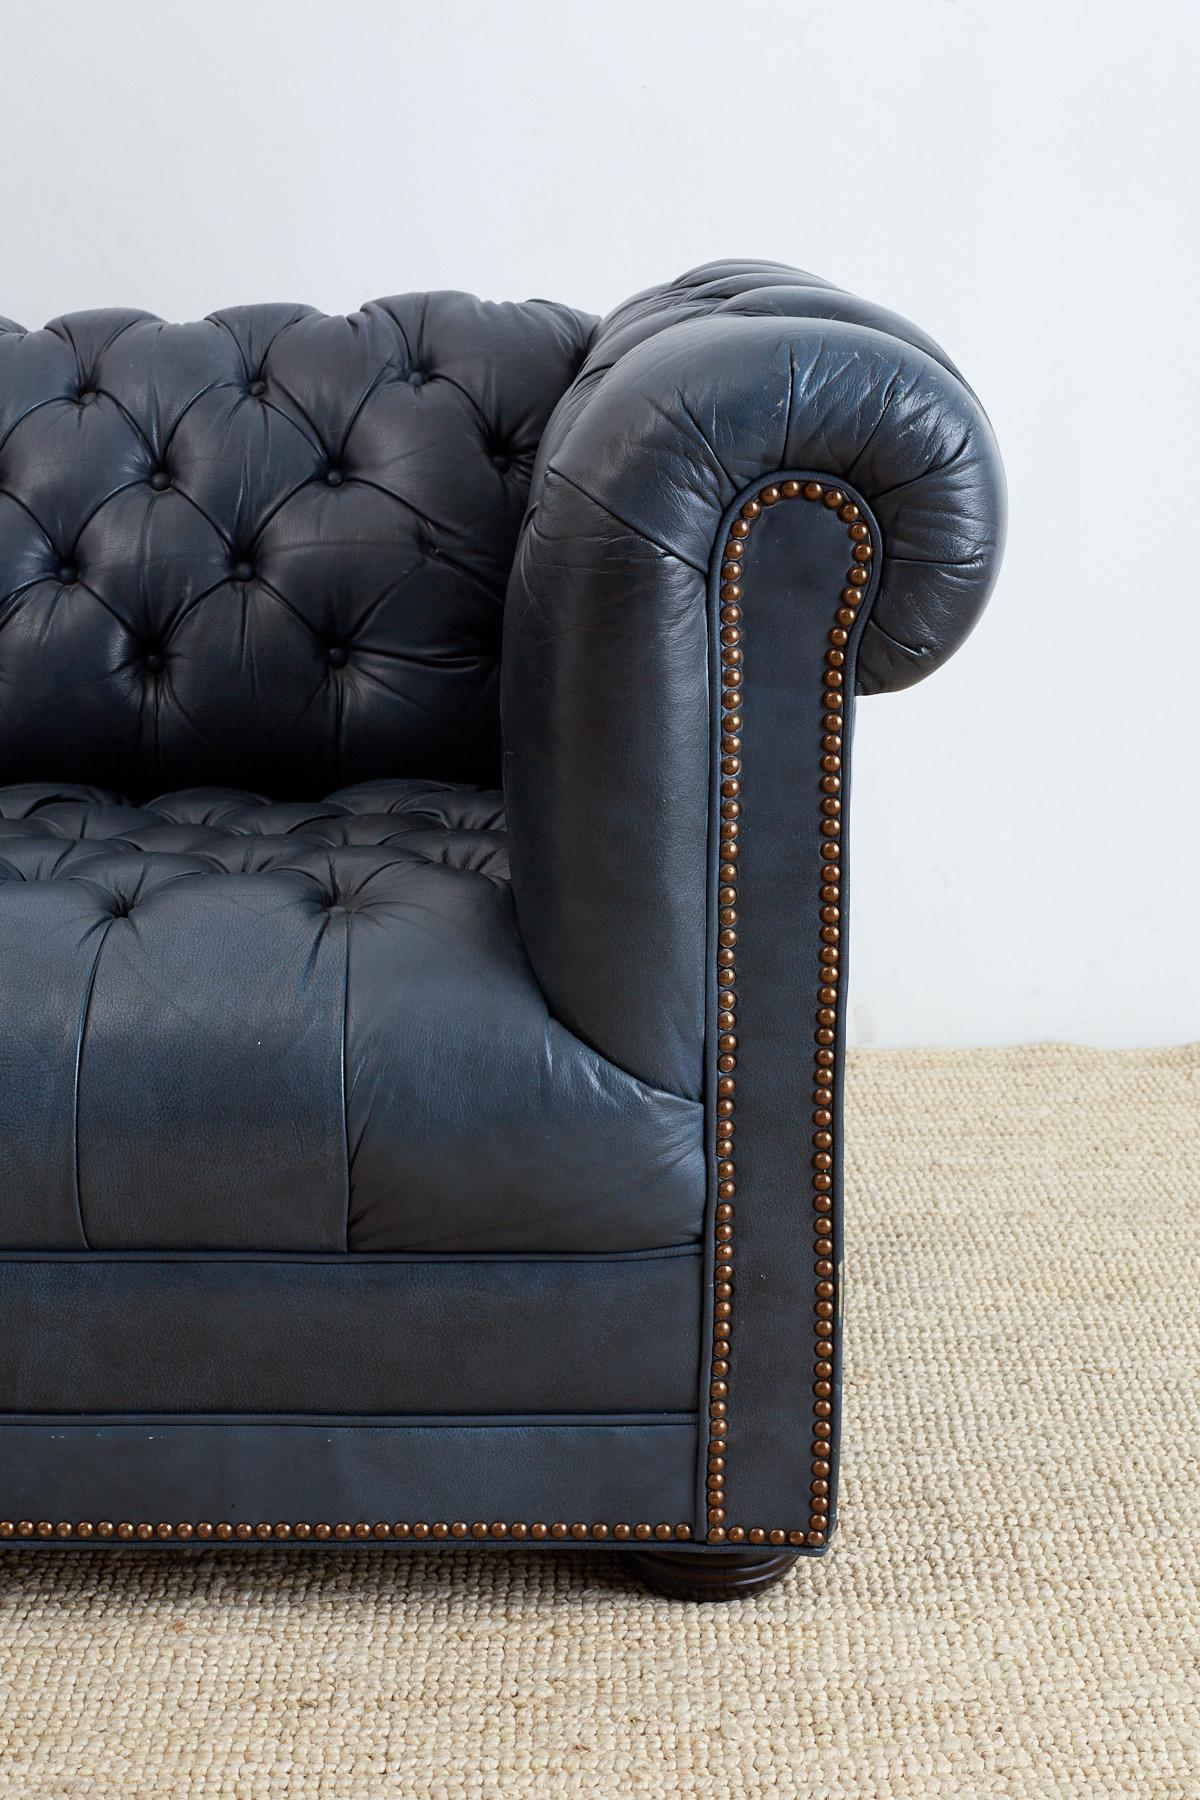 Hand Crafted English Tufted Navy Blue Chesterfield Sofa For Sale